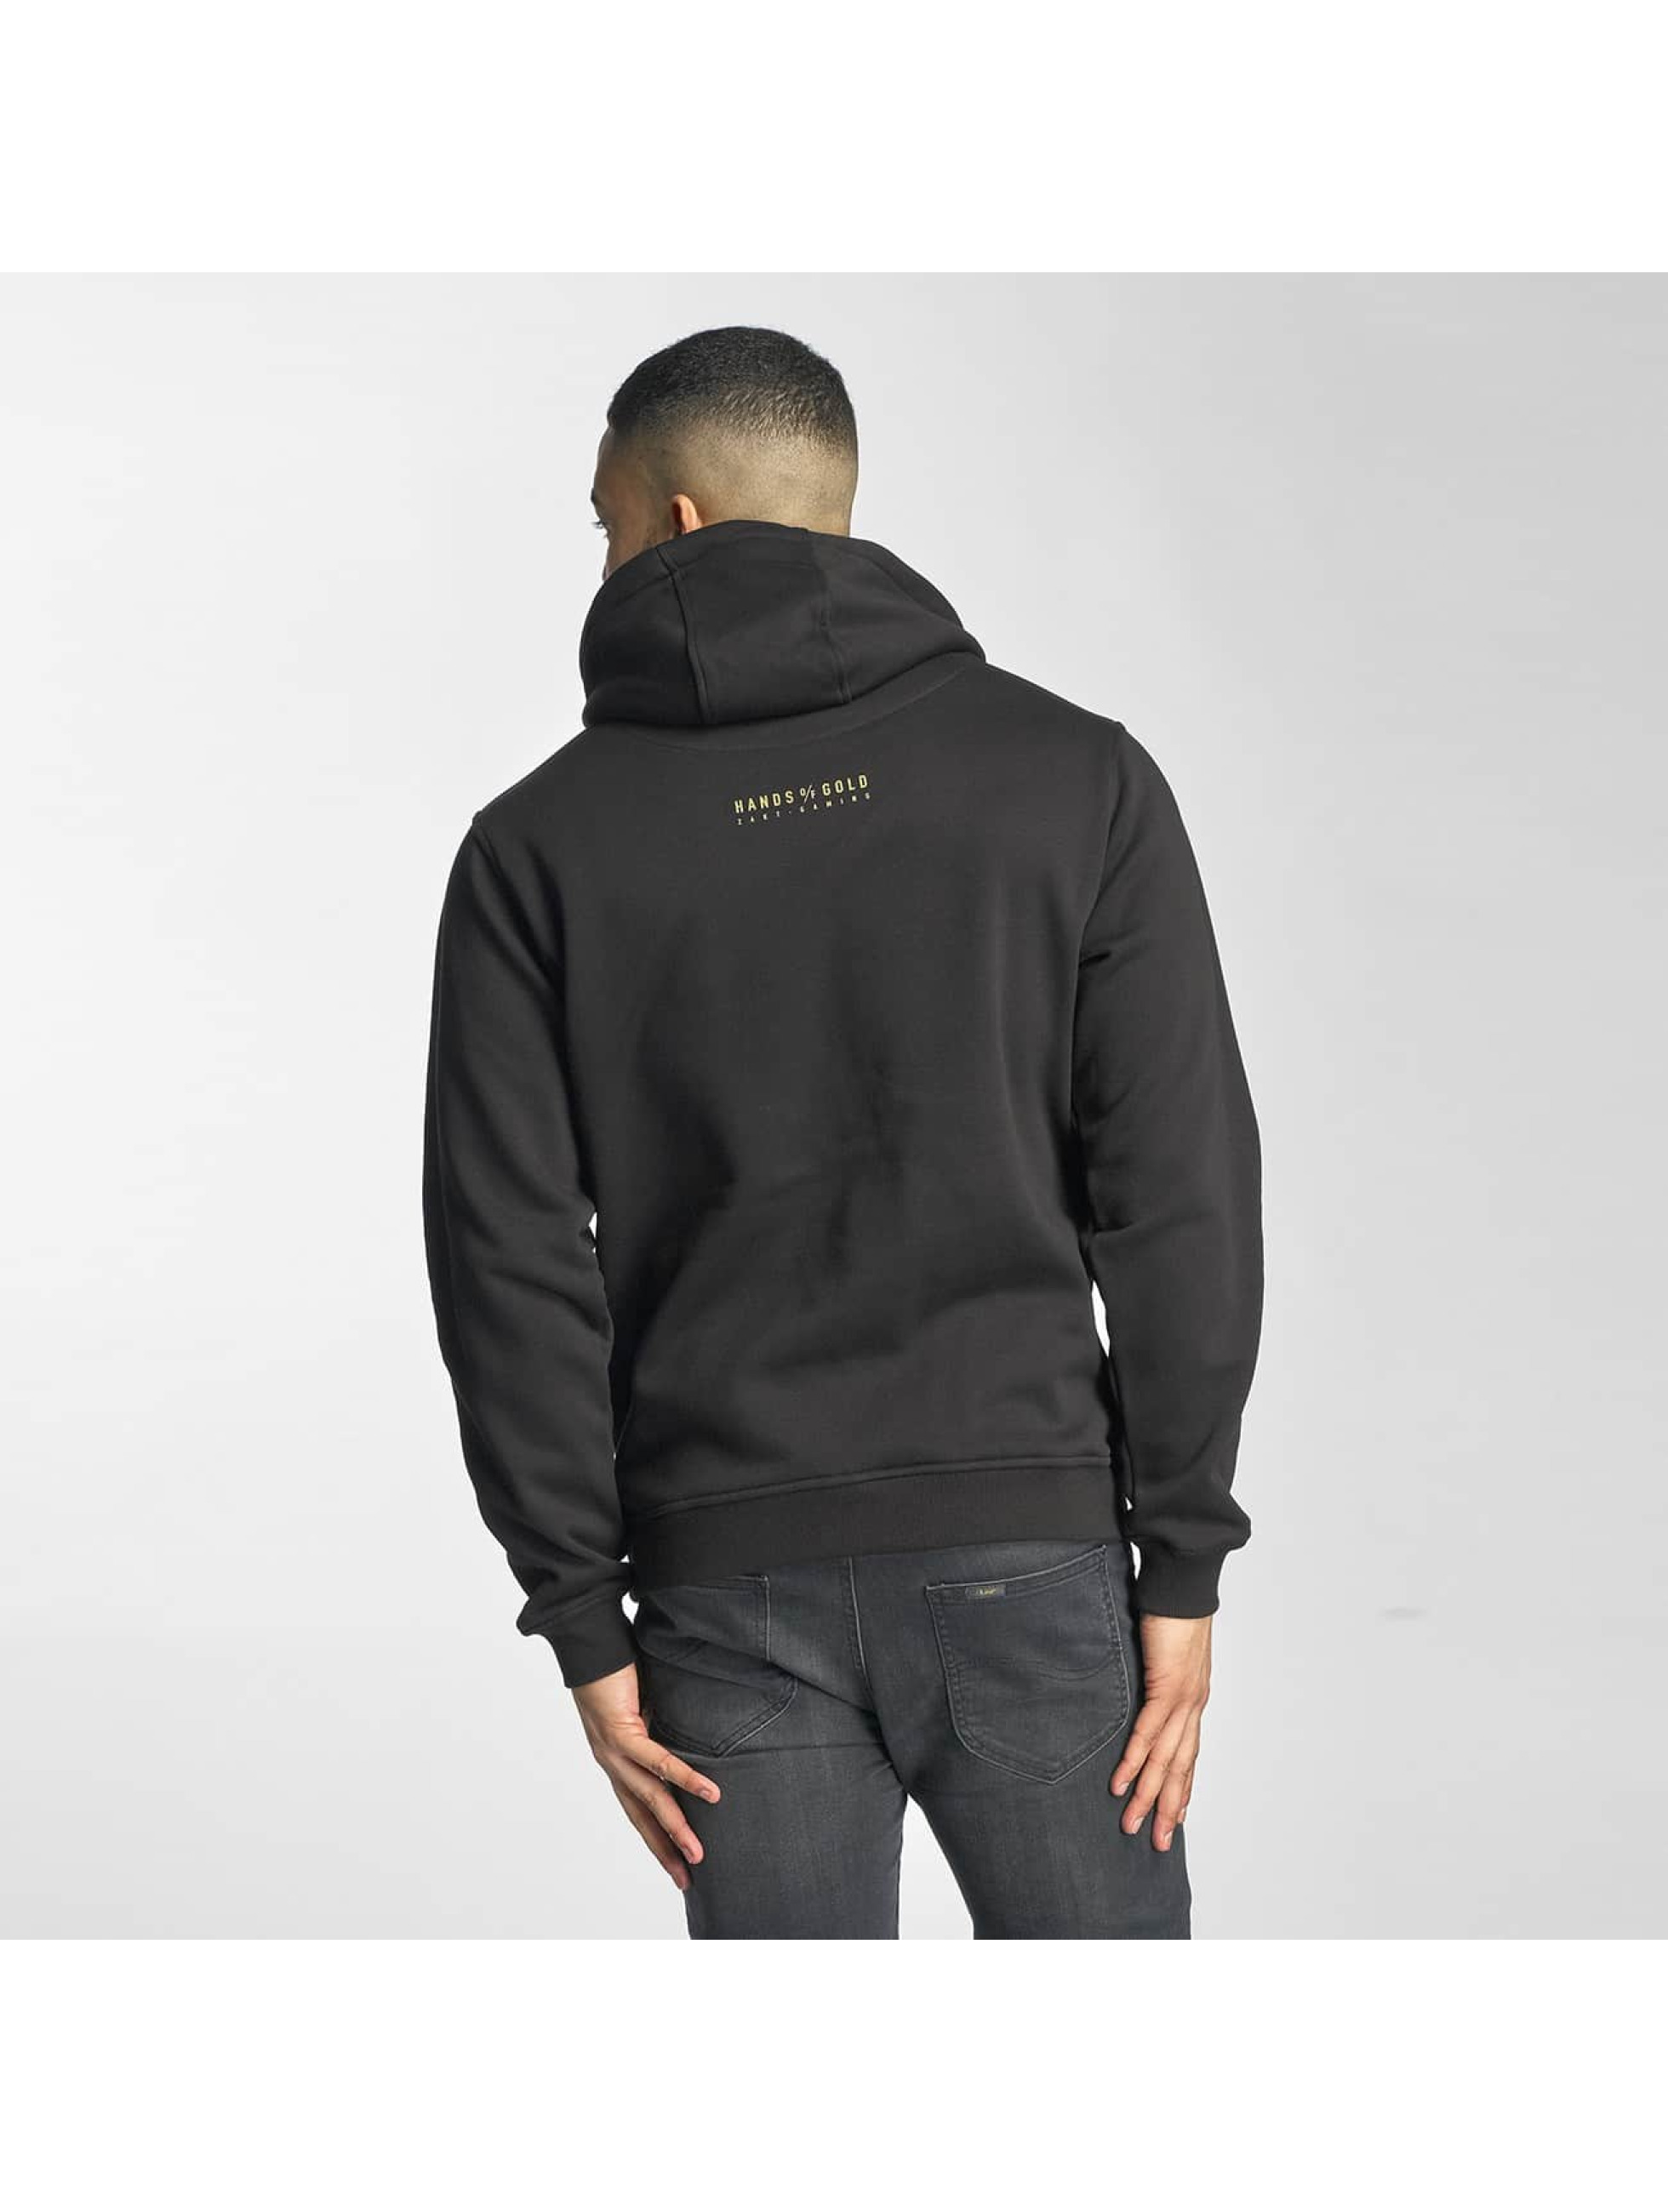 Hands of Gold Hoody Bros Before Hoes schwarz